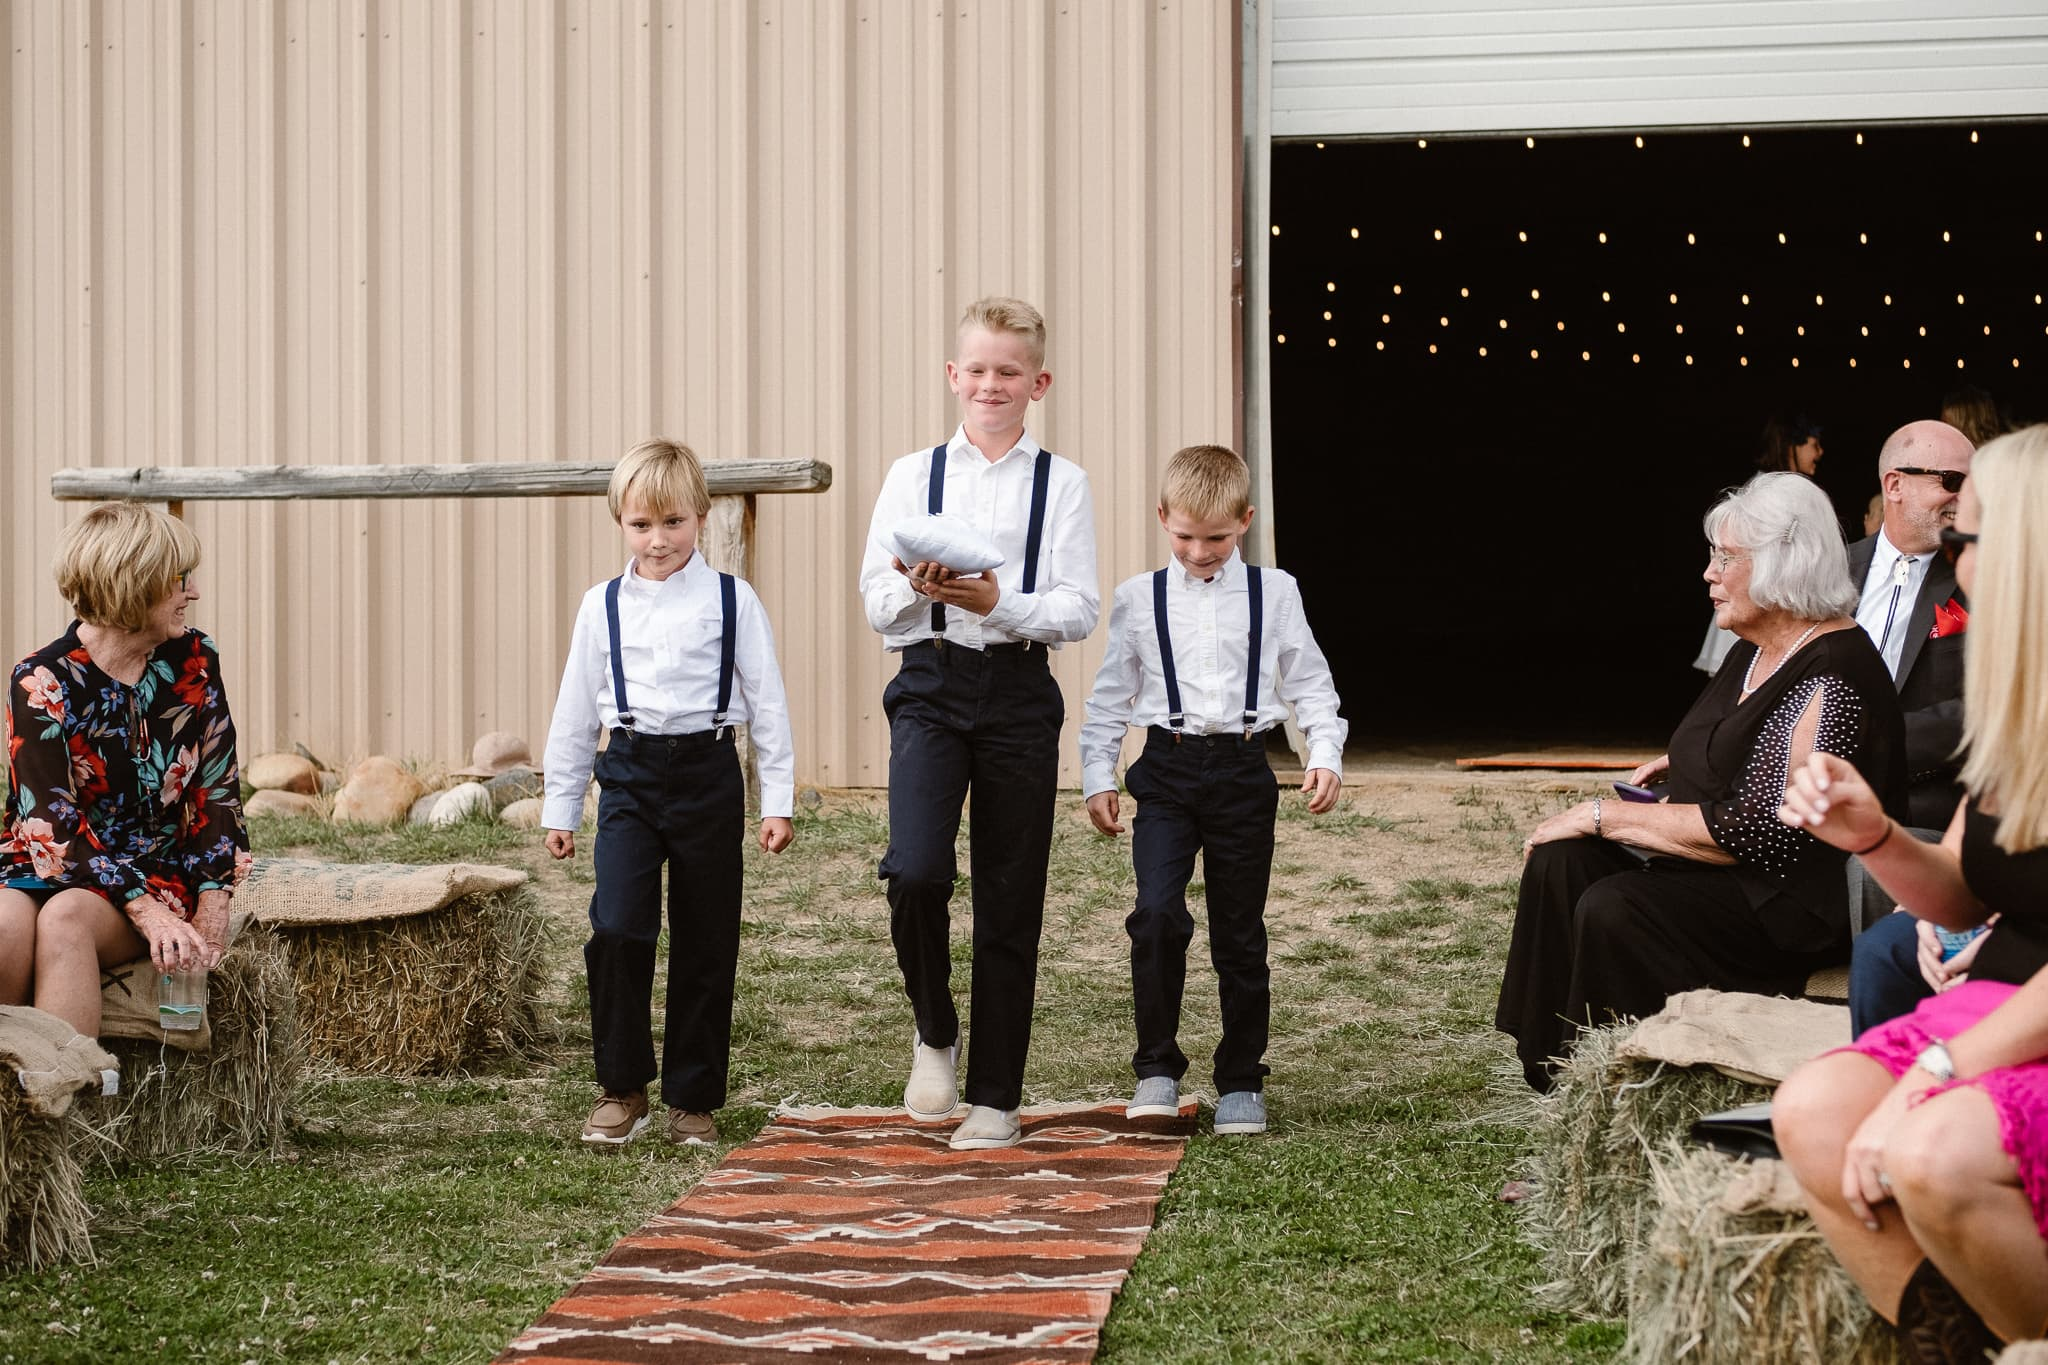 Steamboat Springs wedding photographer, La Joya Dulce wedding, Colorado ranch wedding venues, outdoor wedding ceremony, ring bearers walking up aisle